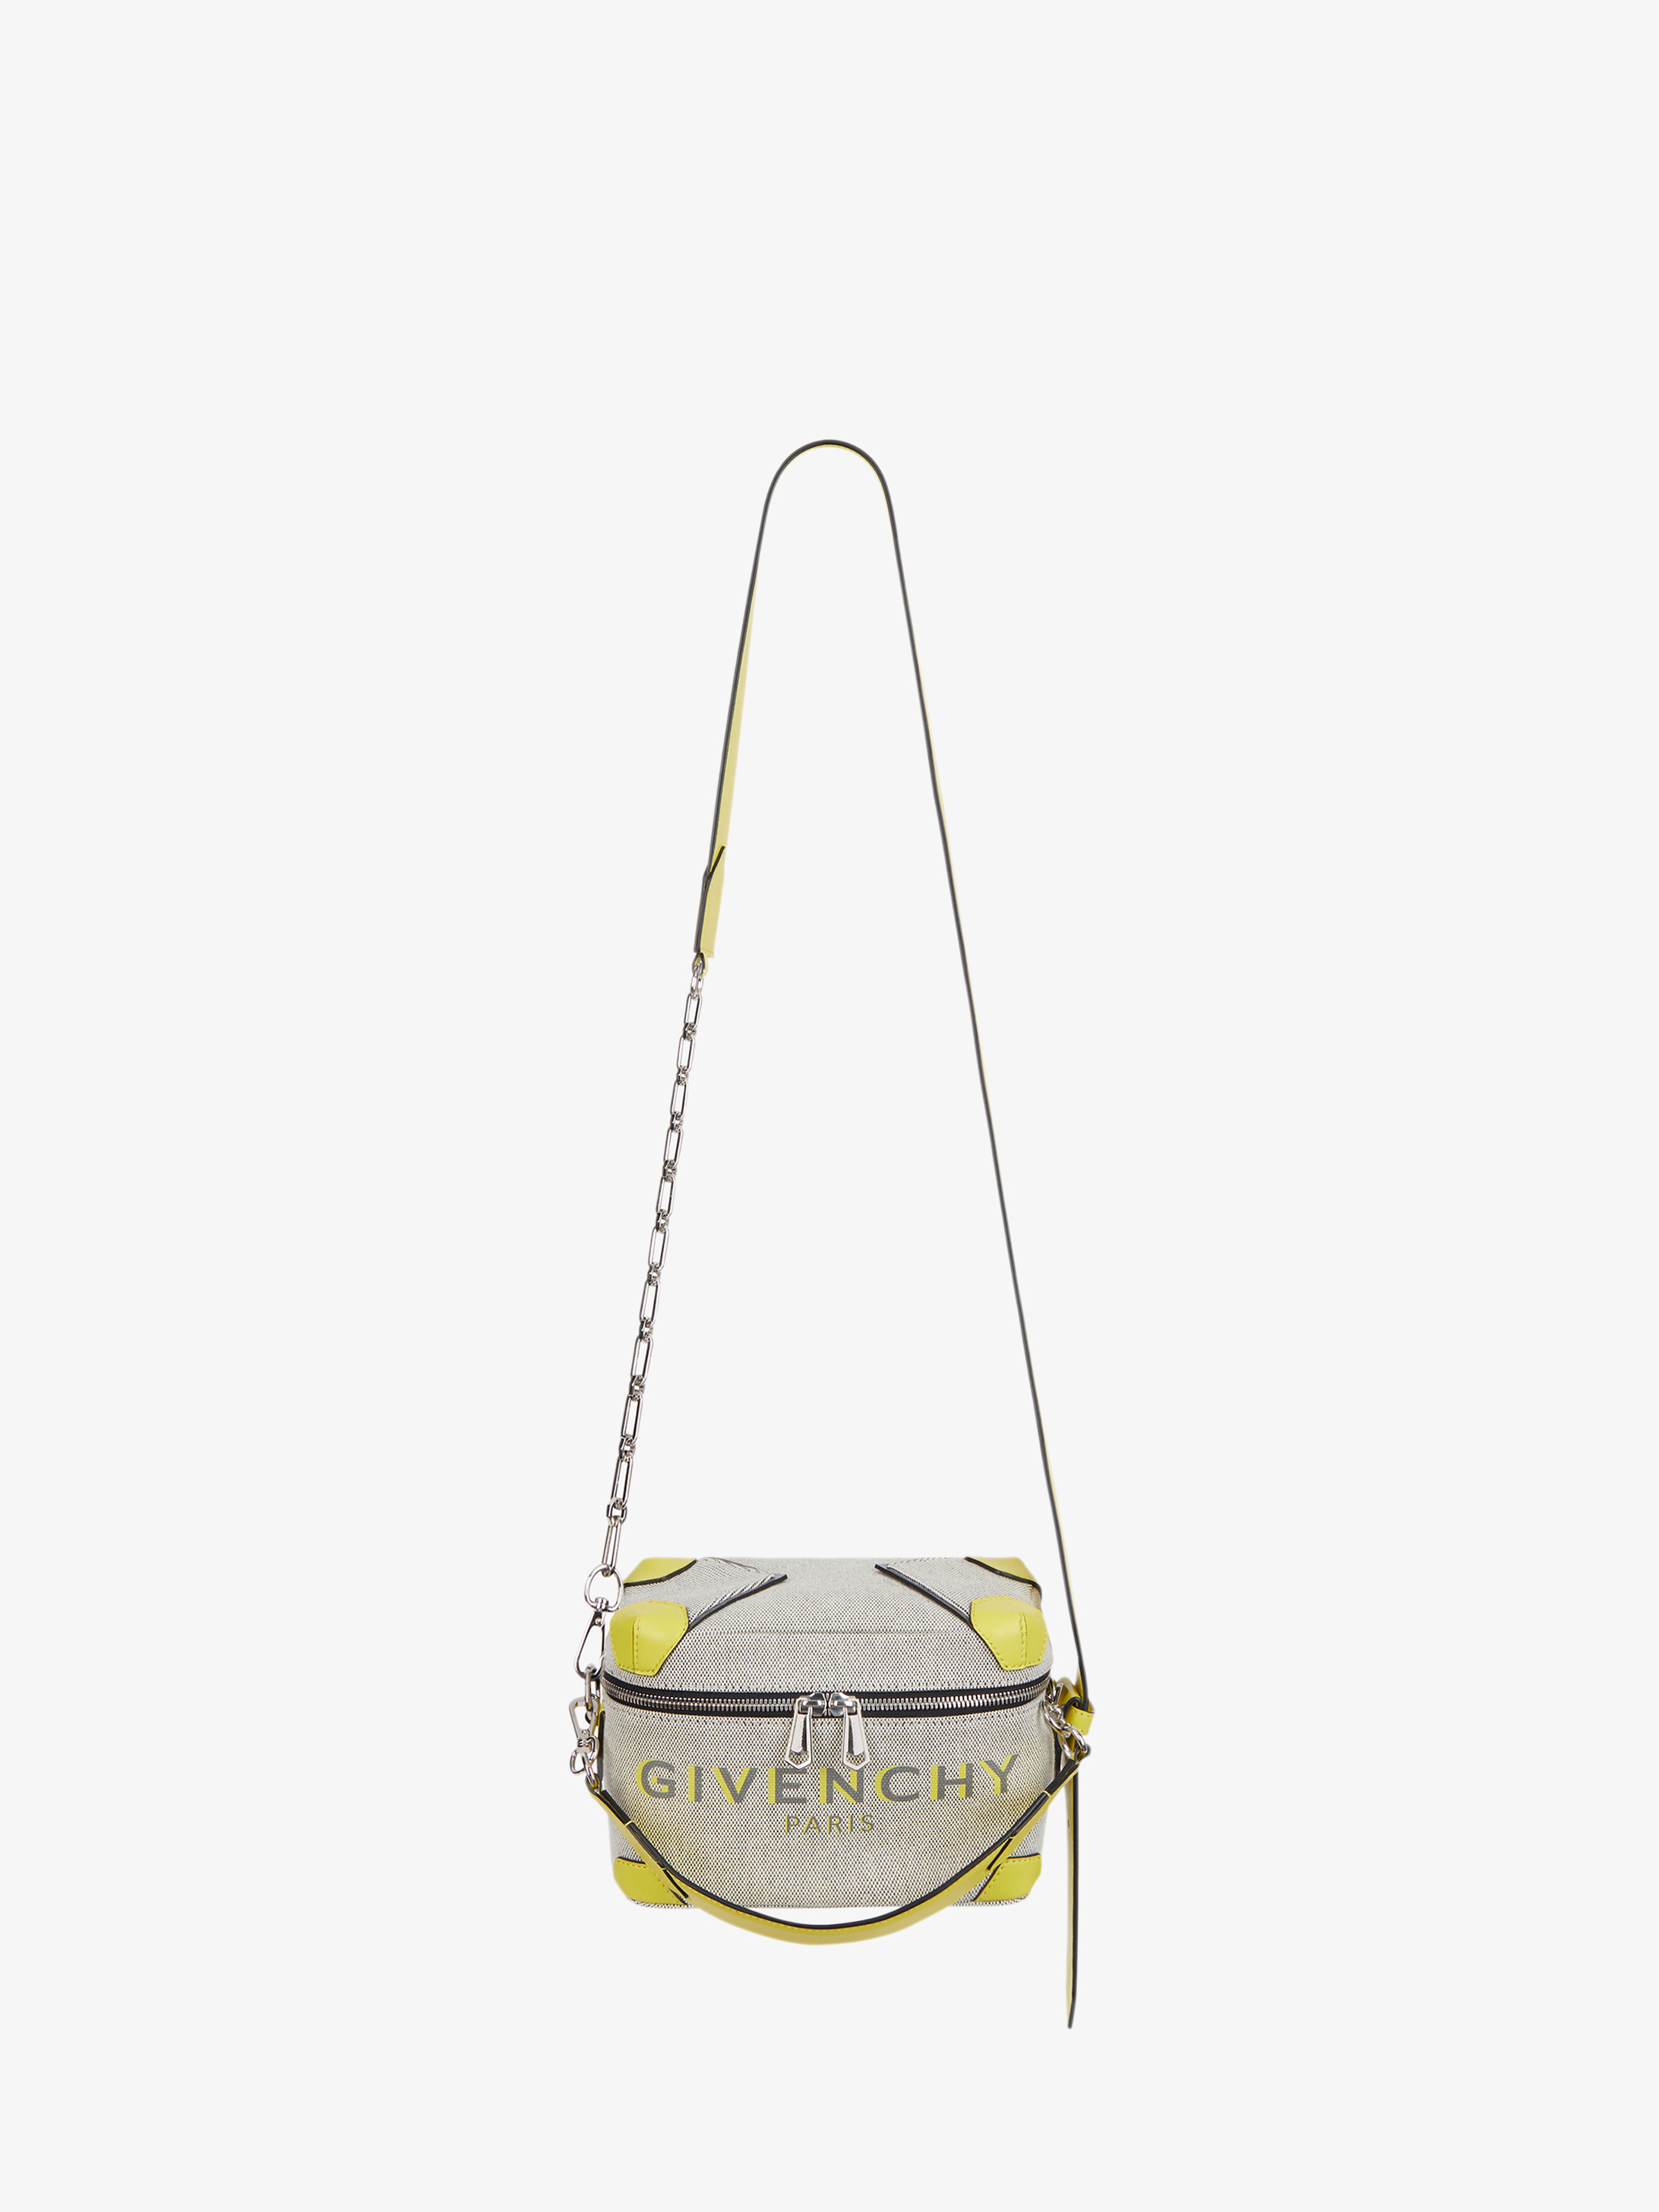 GIVENCHY PARIS Bond coffer bag in canvas and leather